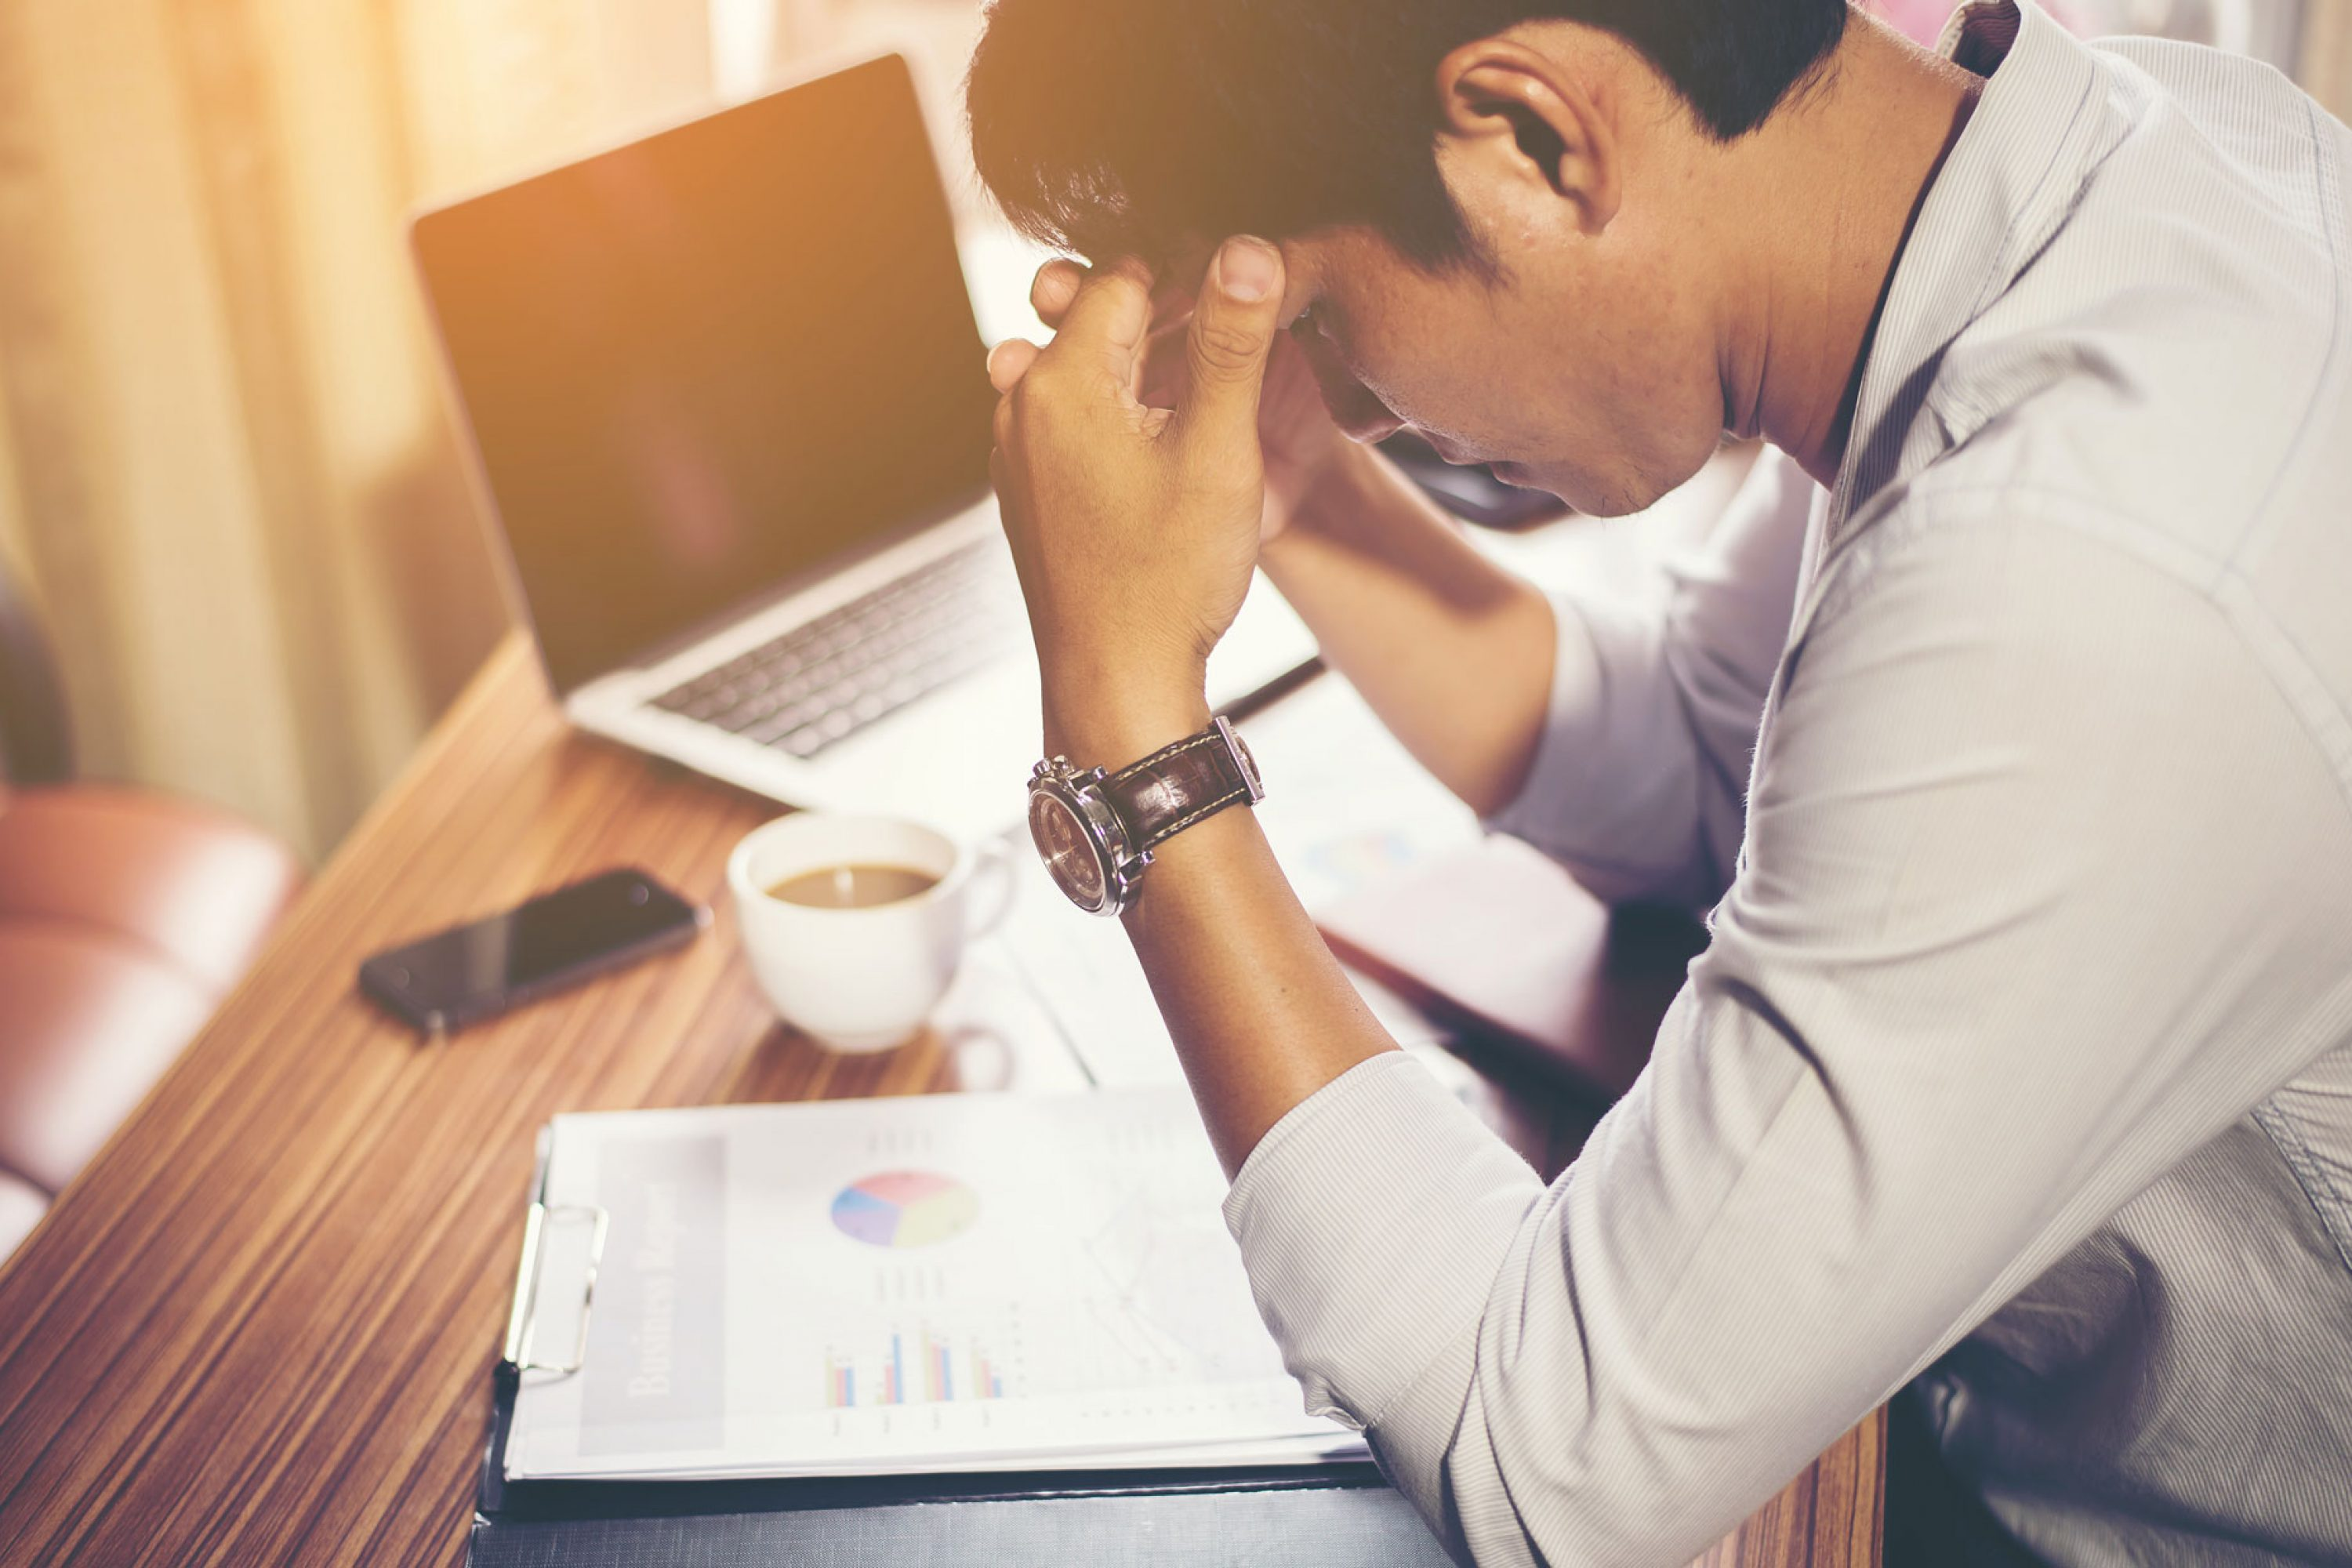 5 Ways to Avoid Overwork and Recharge Your Energy Levels